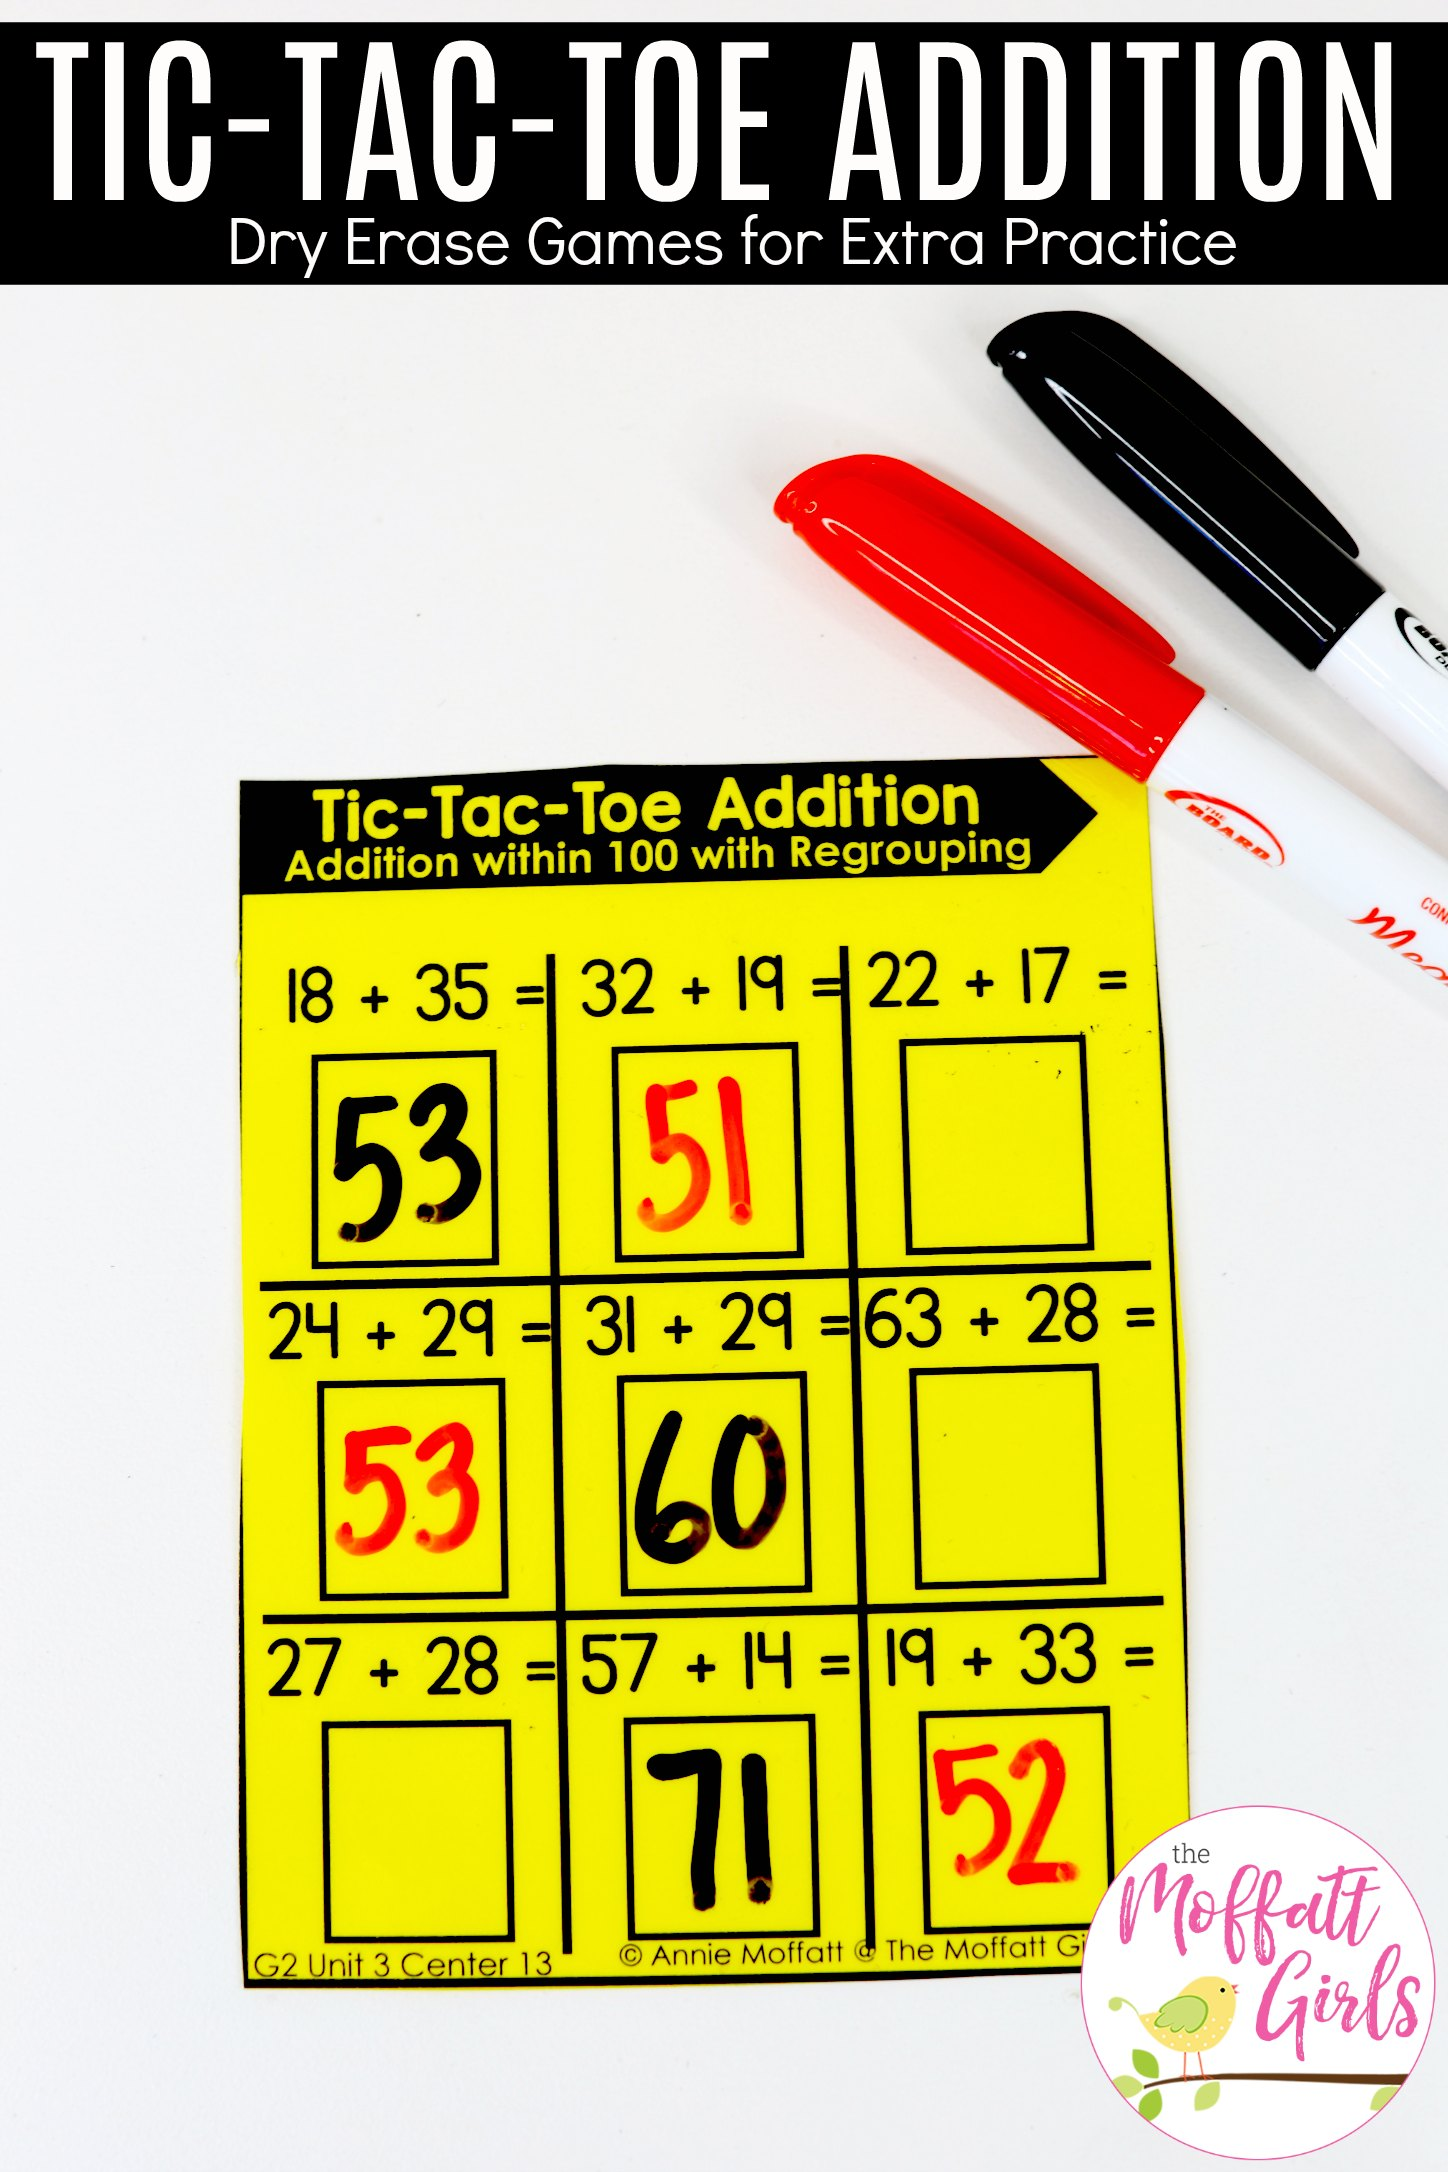 Tic Tac Toe Addition Game 13a